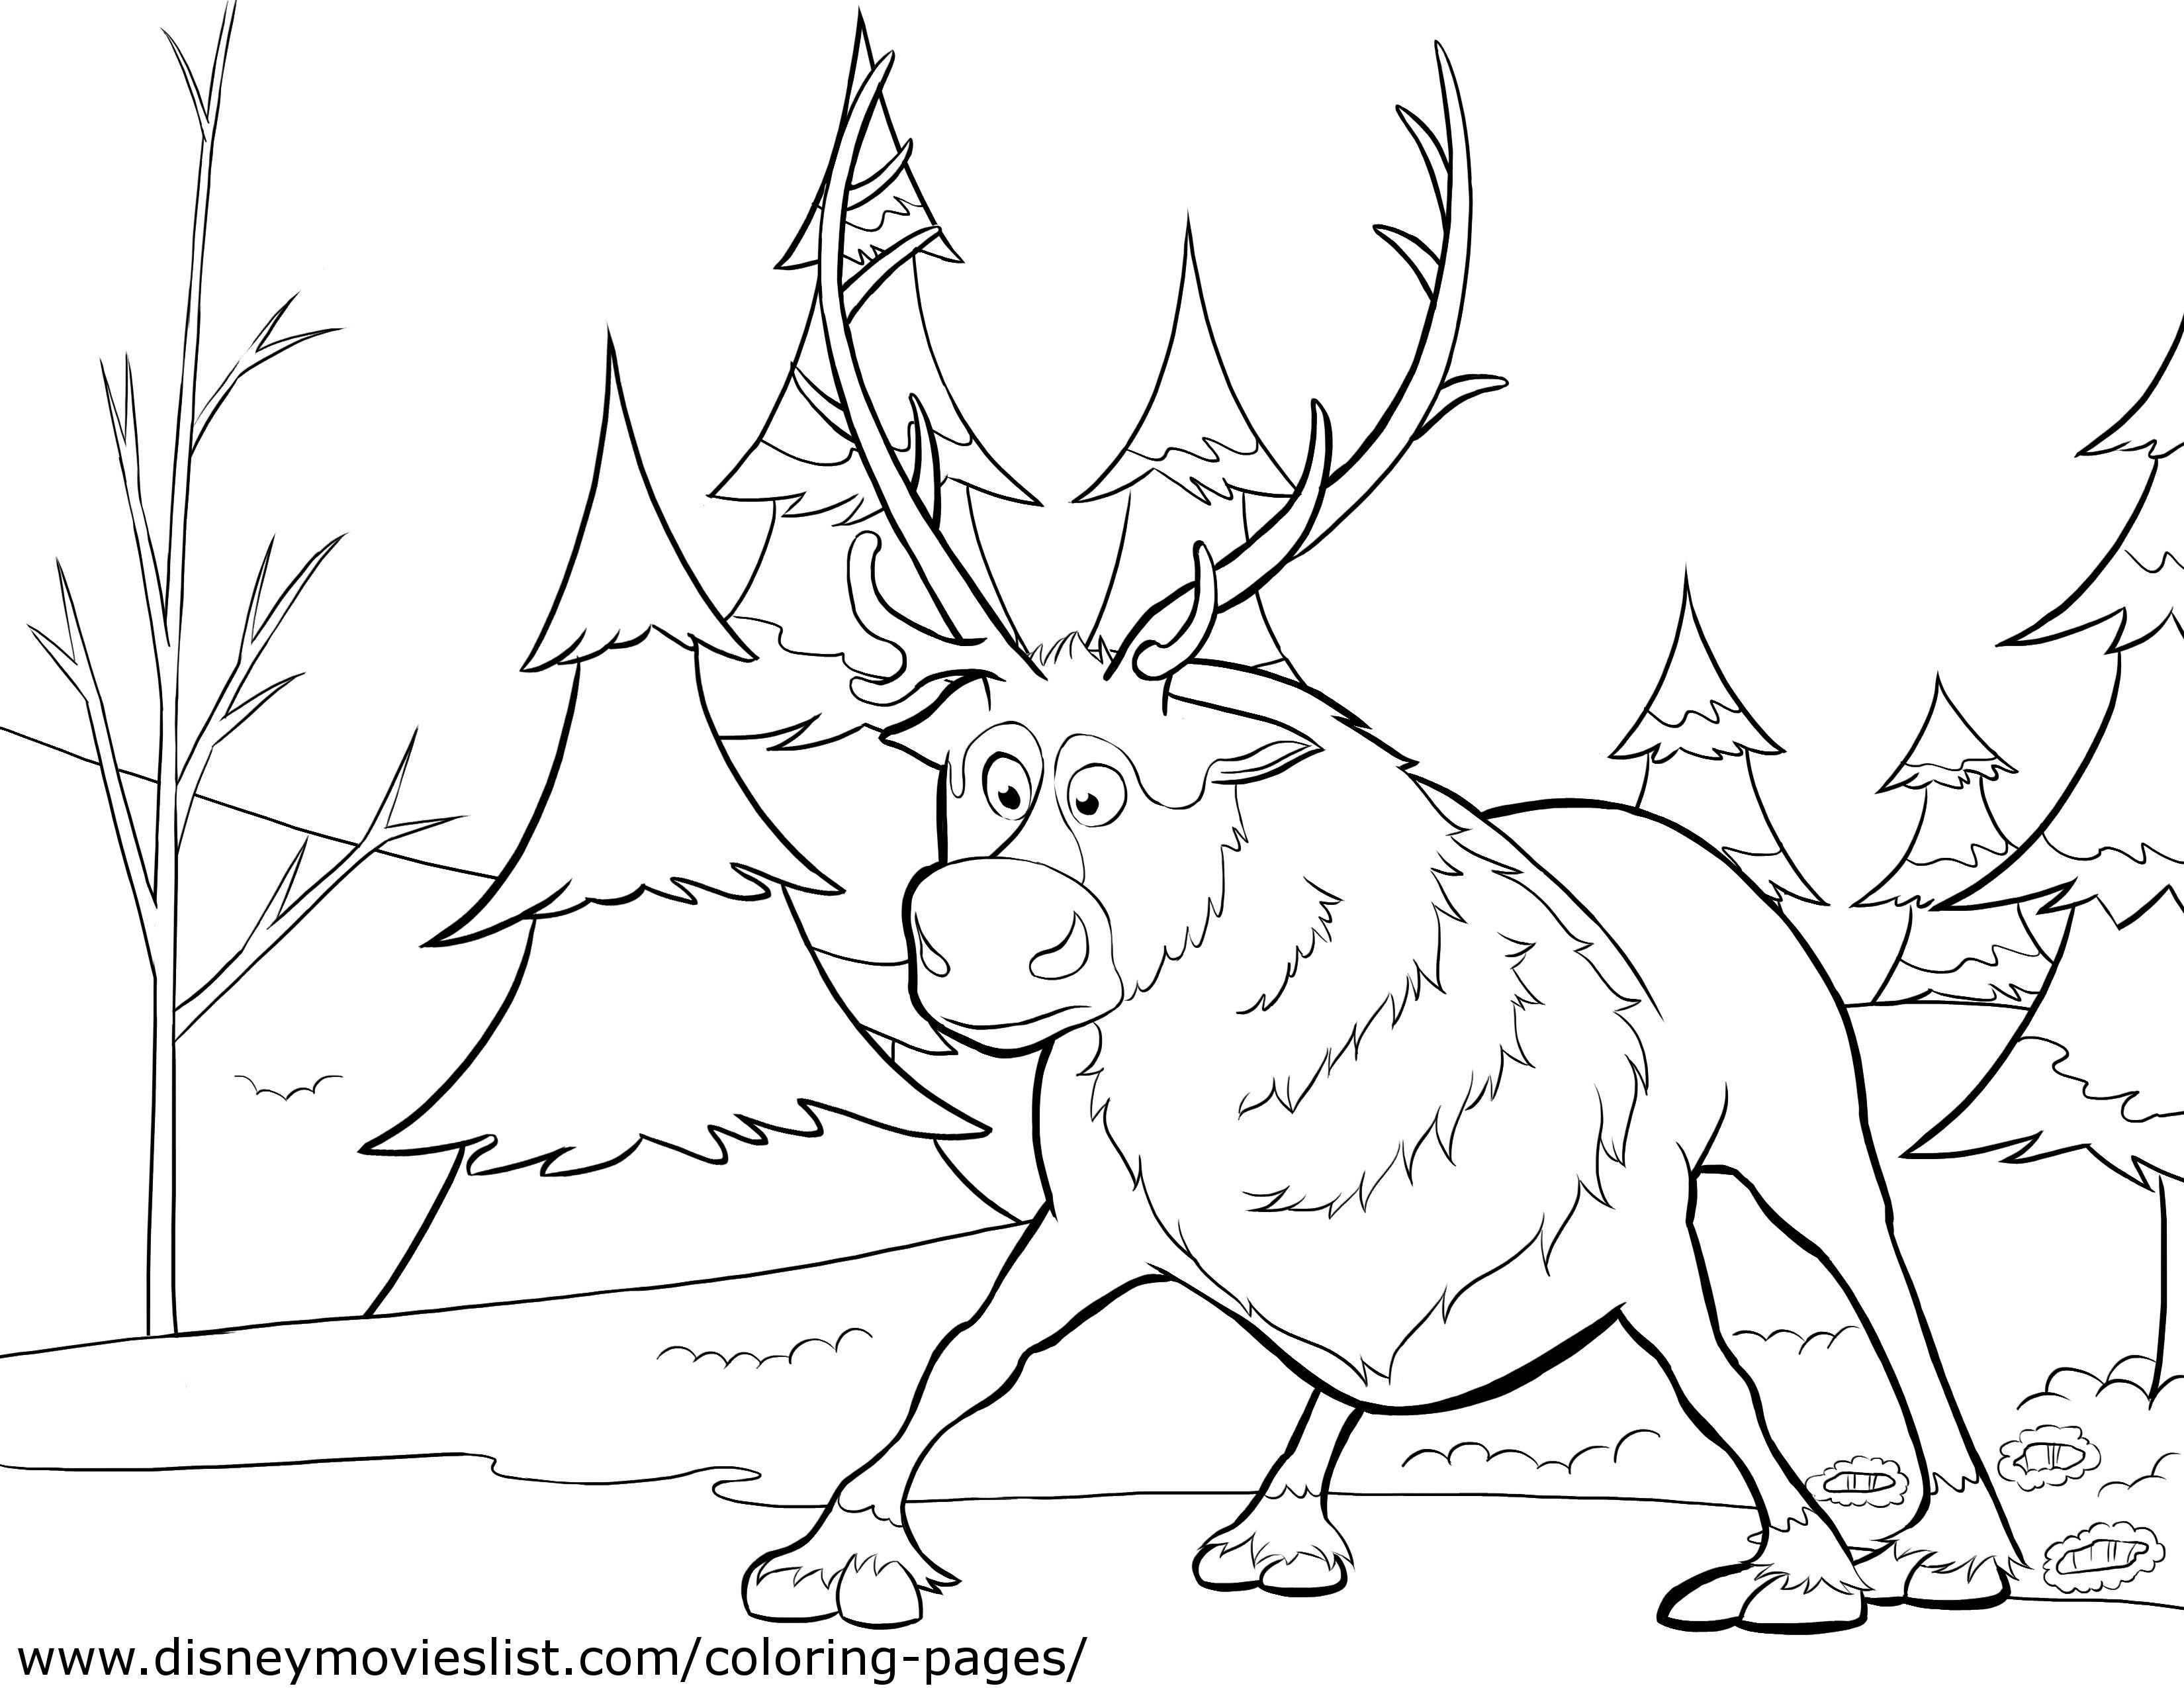 Frozen Coloring Pages A4 Printable Frozen Coloring Elsa Coloring Pages Frozen Coloring Pages